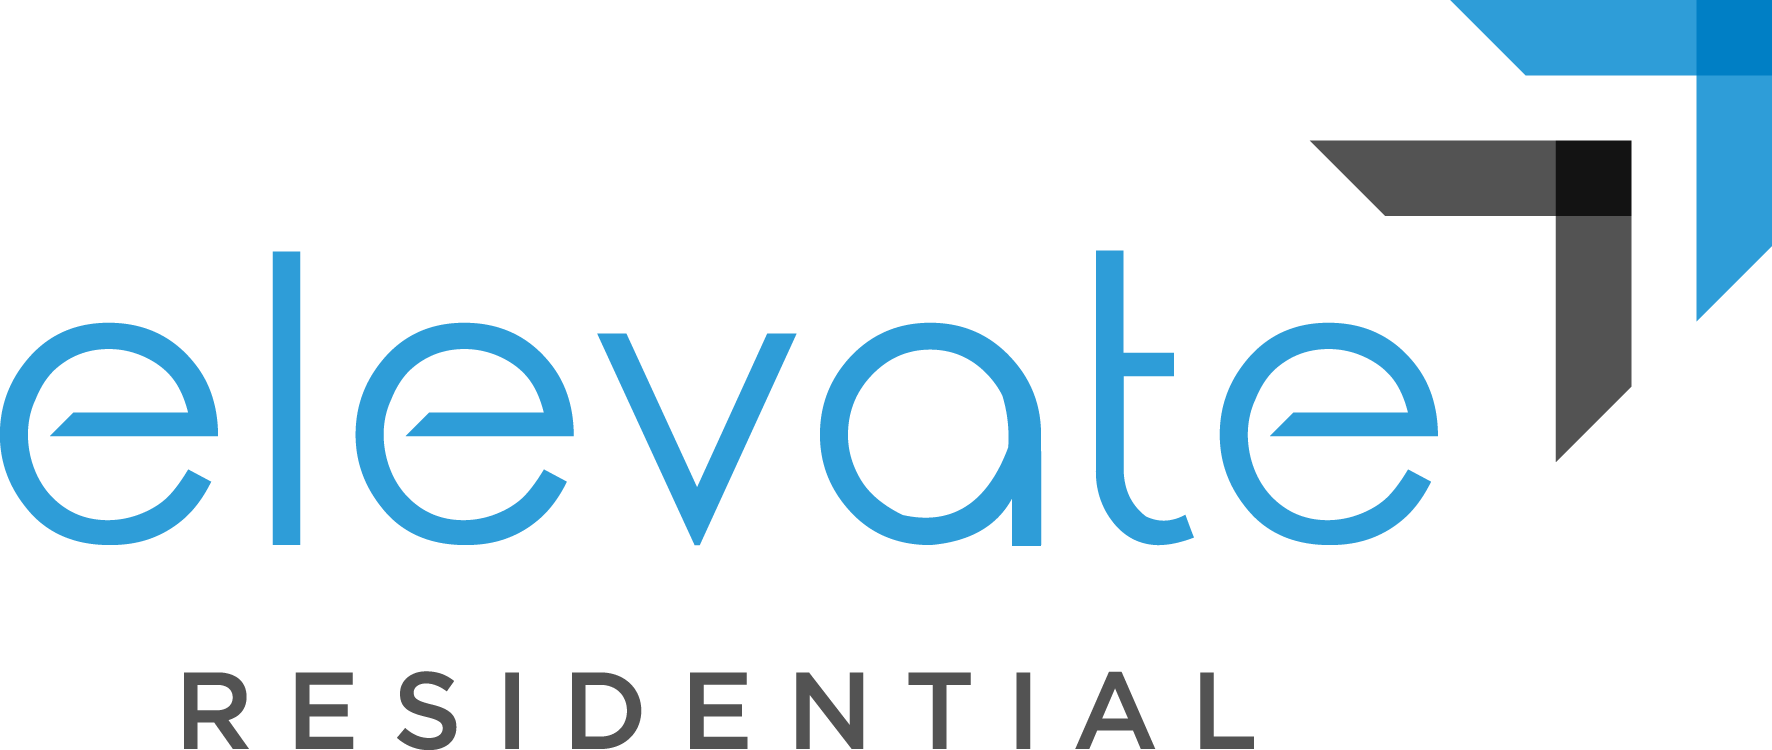 Elevate-Residential_Logo_RGB.png